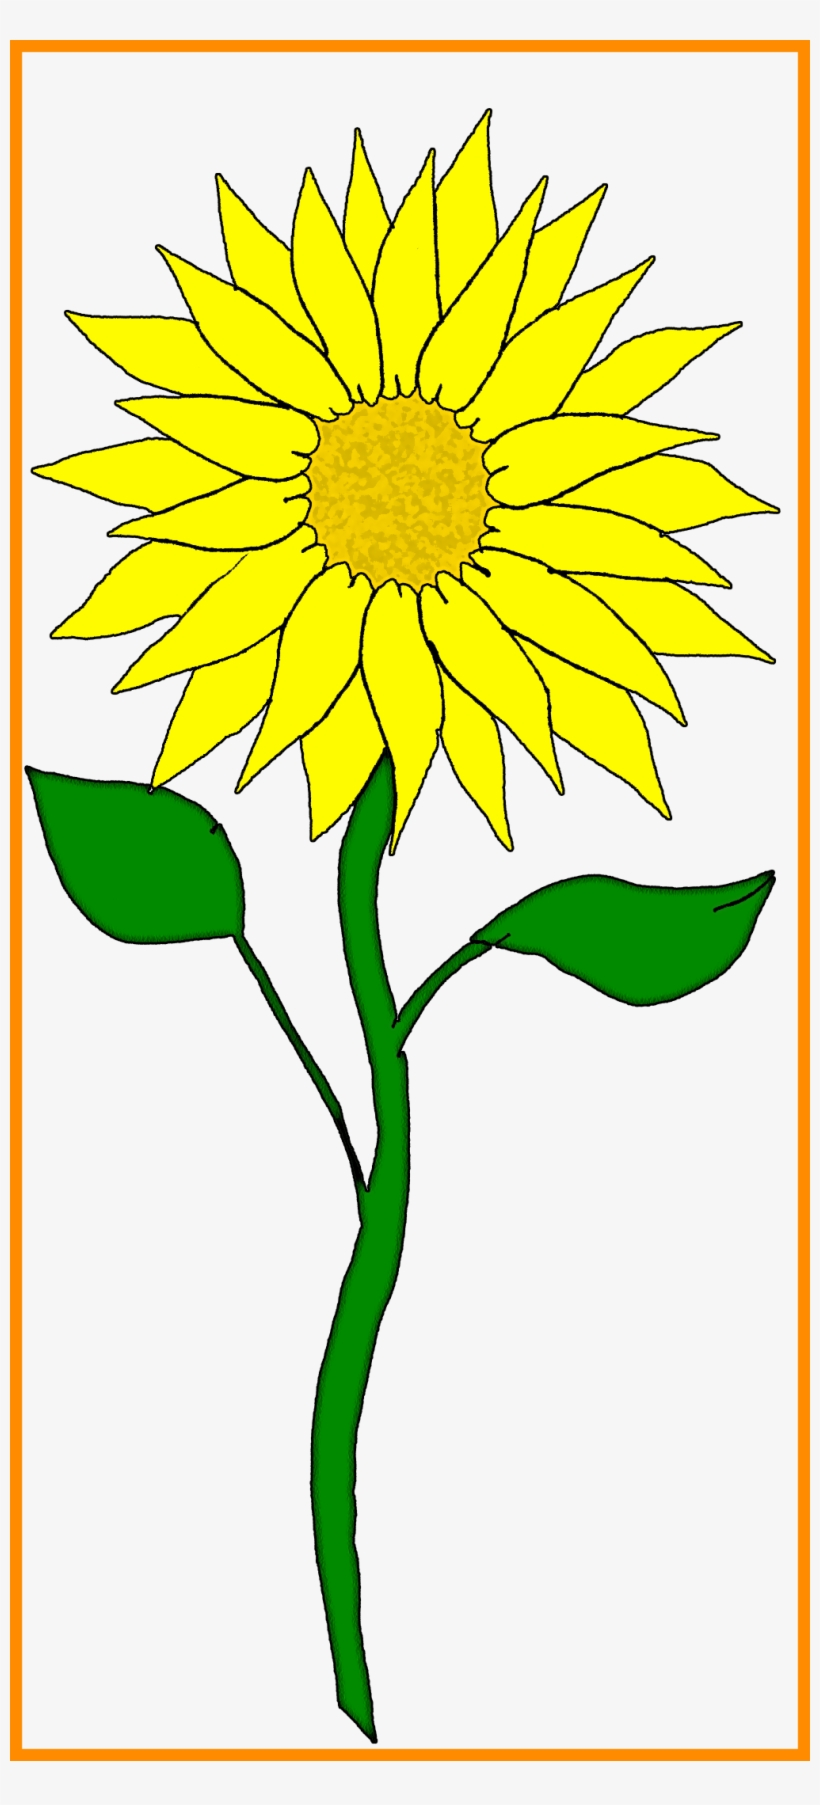 Stunning Flower Clipart Pict For Sunflower Frame Styles - Sunflowers Clipar, transparent png #1440468